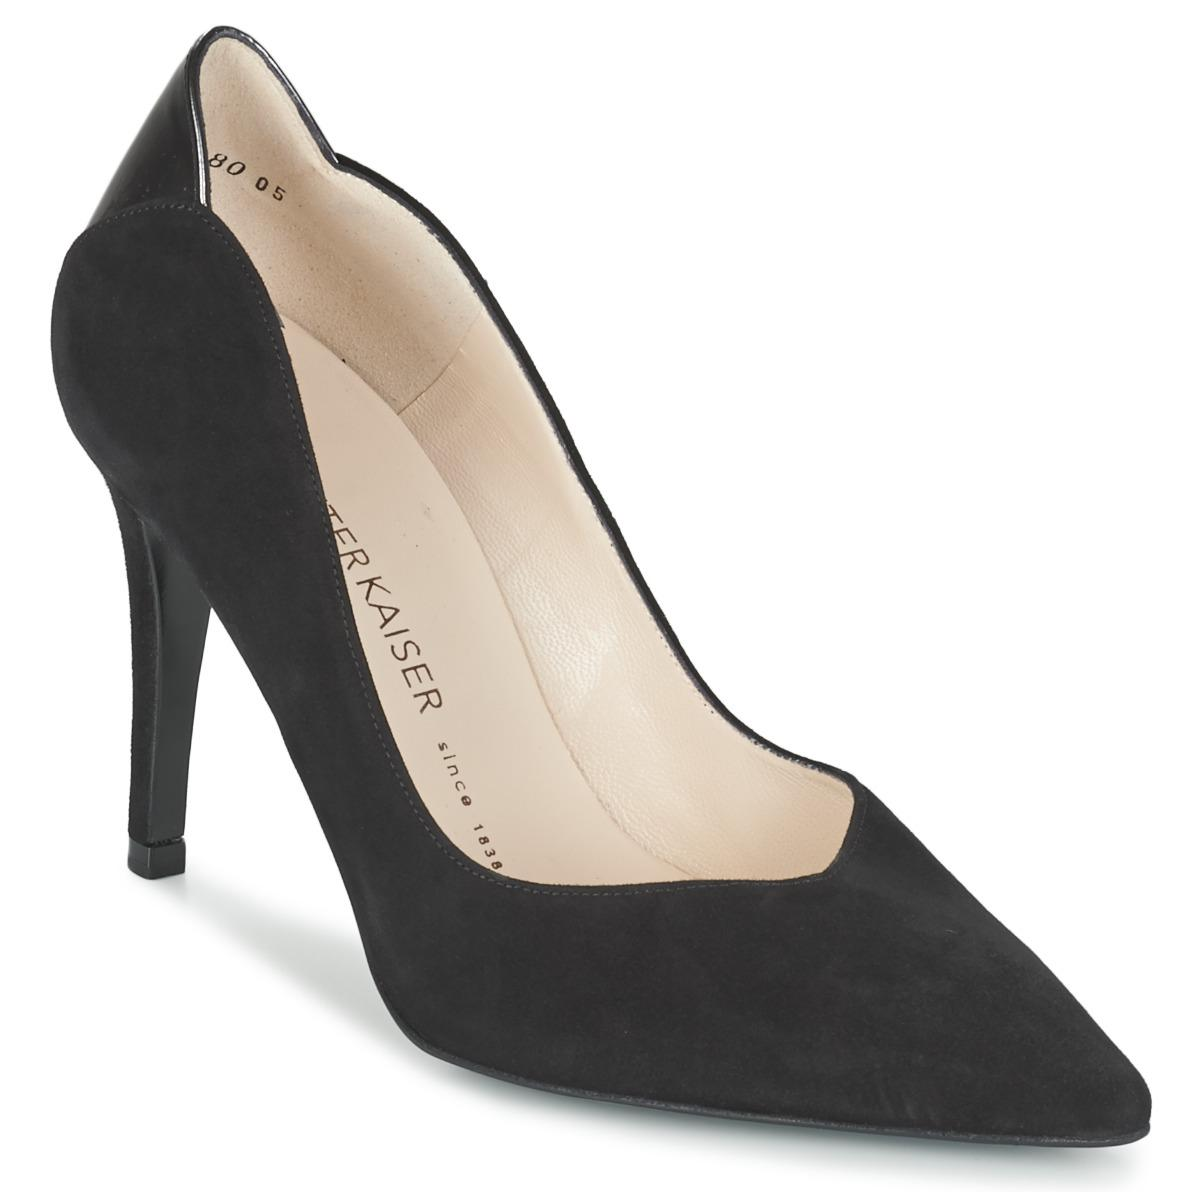 separation shoes ff1b2 3bfff Peter Kaiser Dusan Court Shoes in Black - Lyst